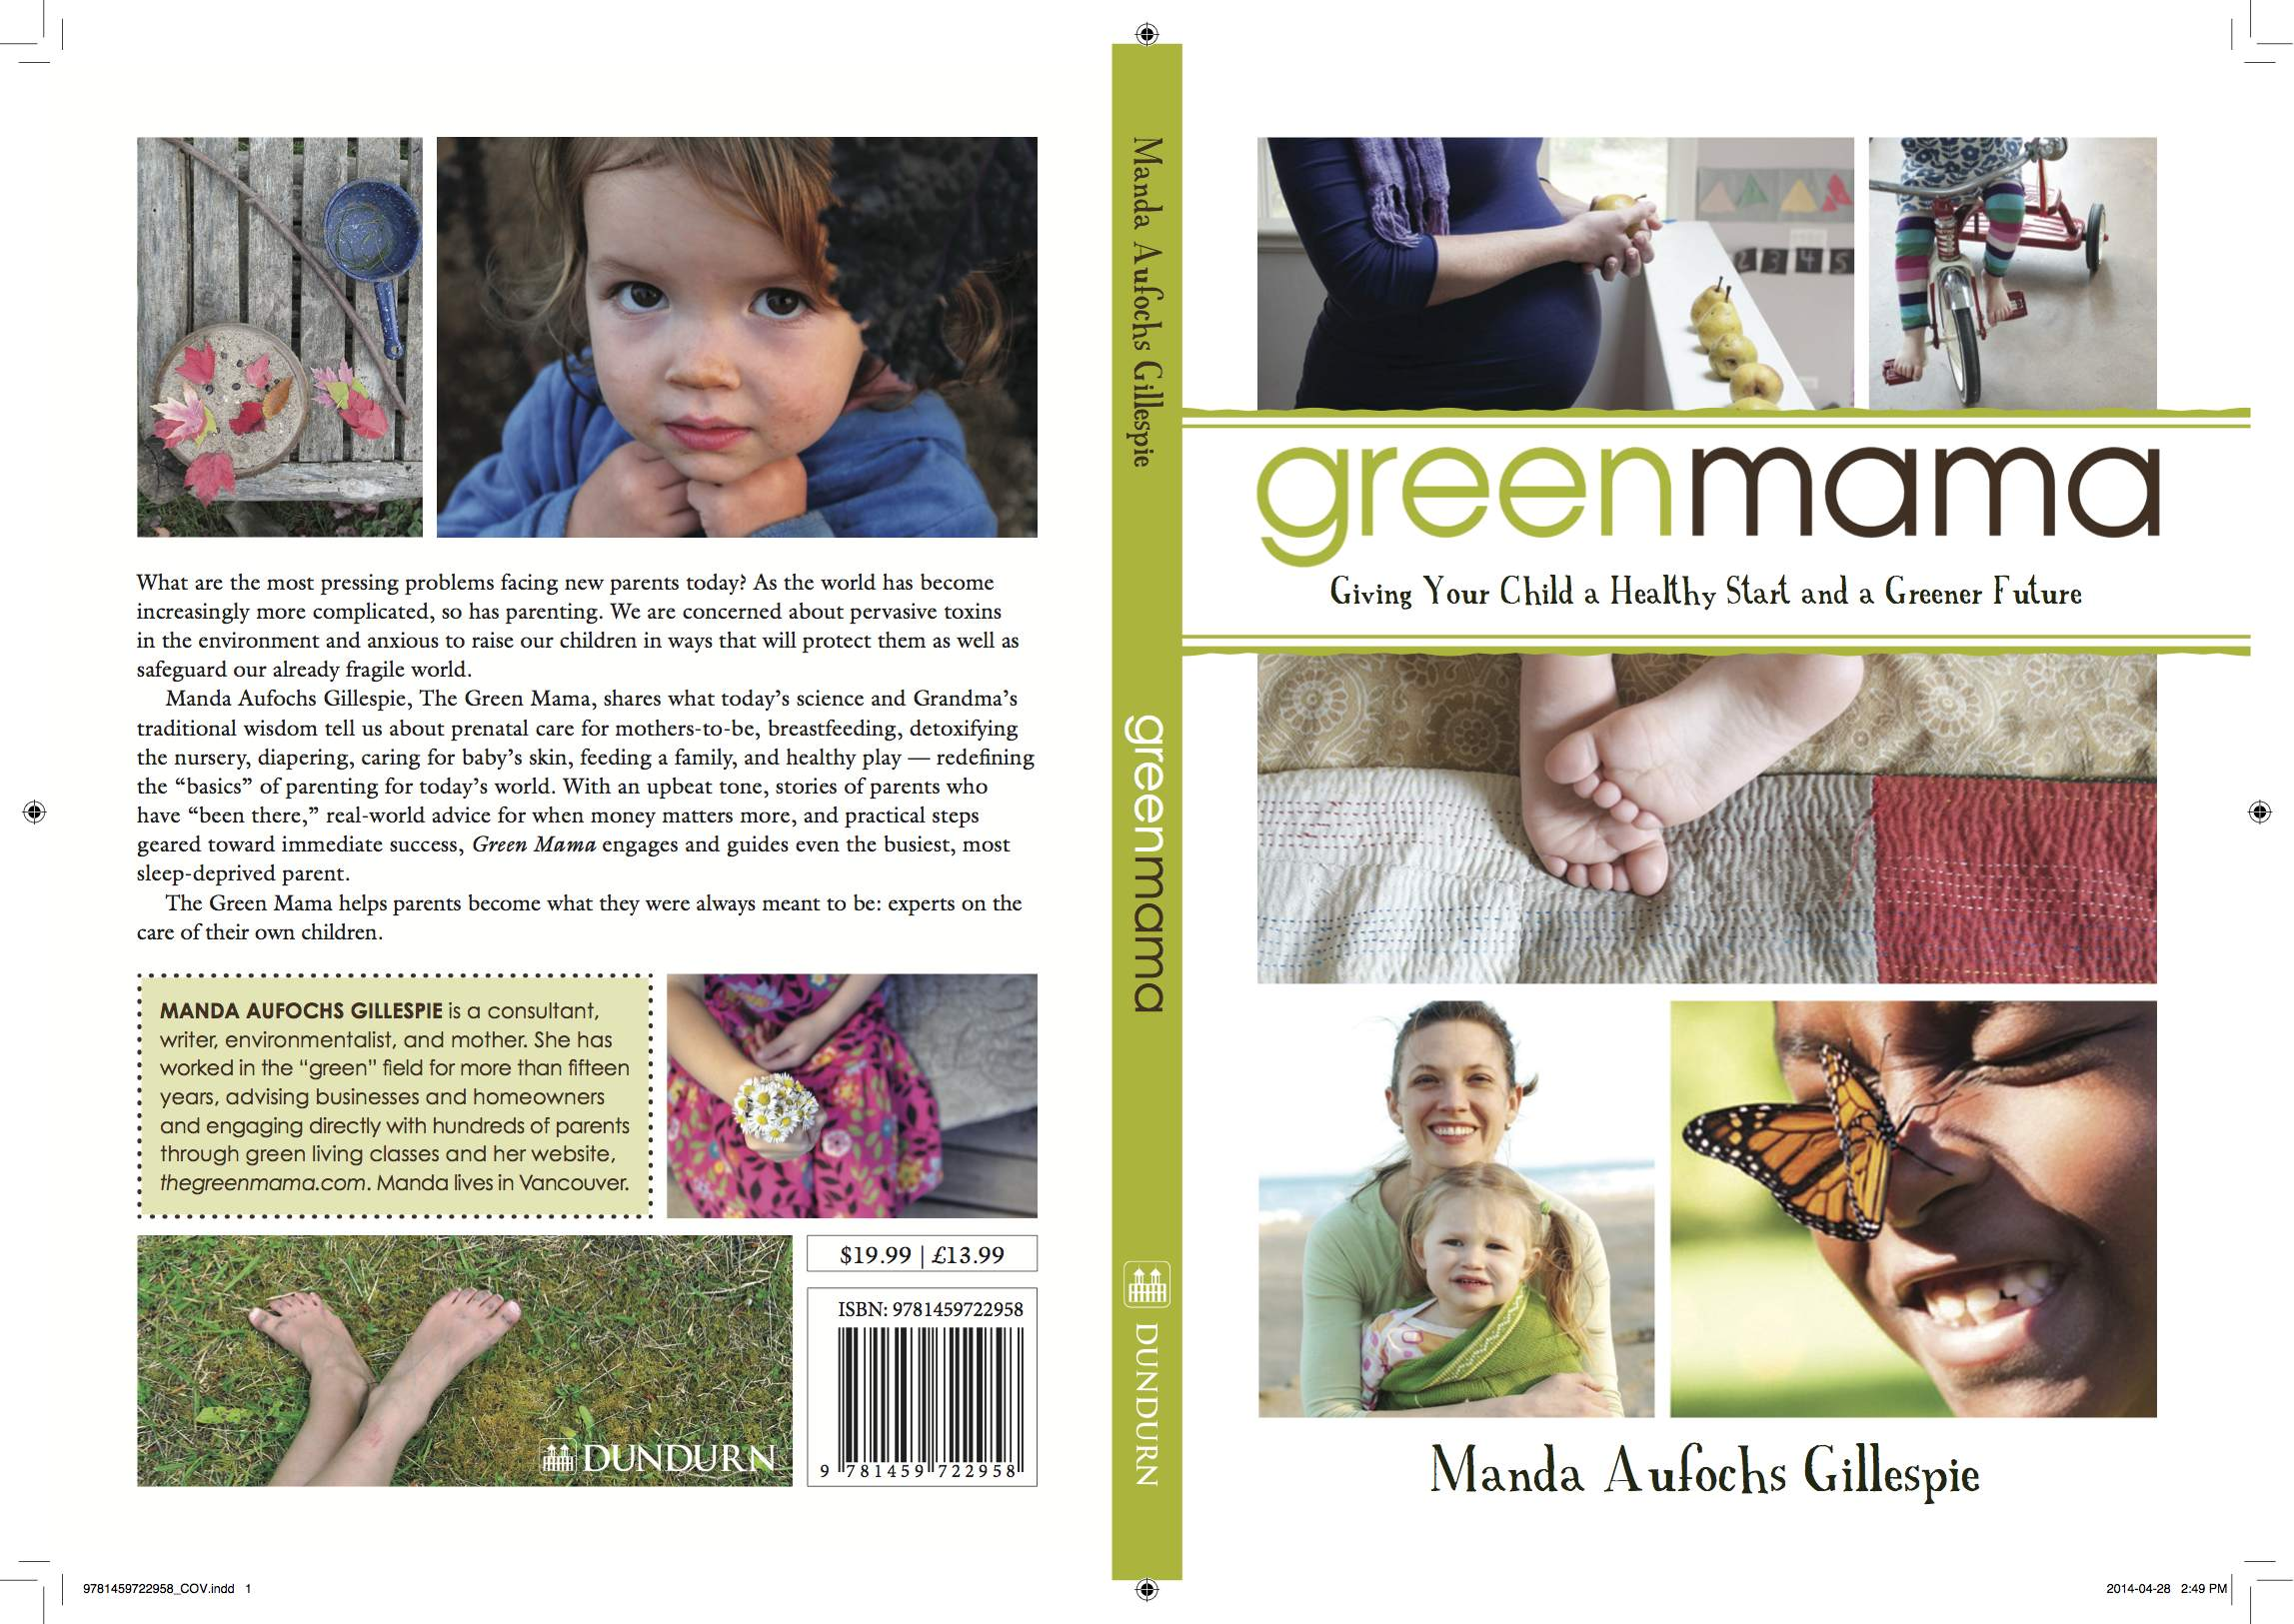 http://thegreenmama.com/wp-content/uploads/2014/07/green-mama-book-covers-as-photo.jpg